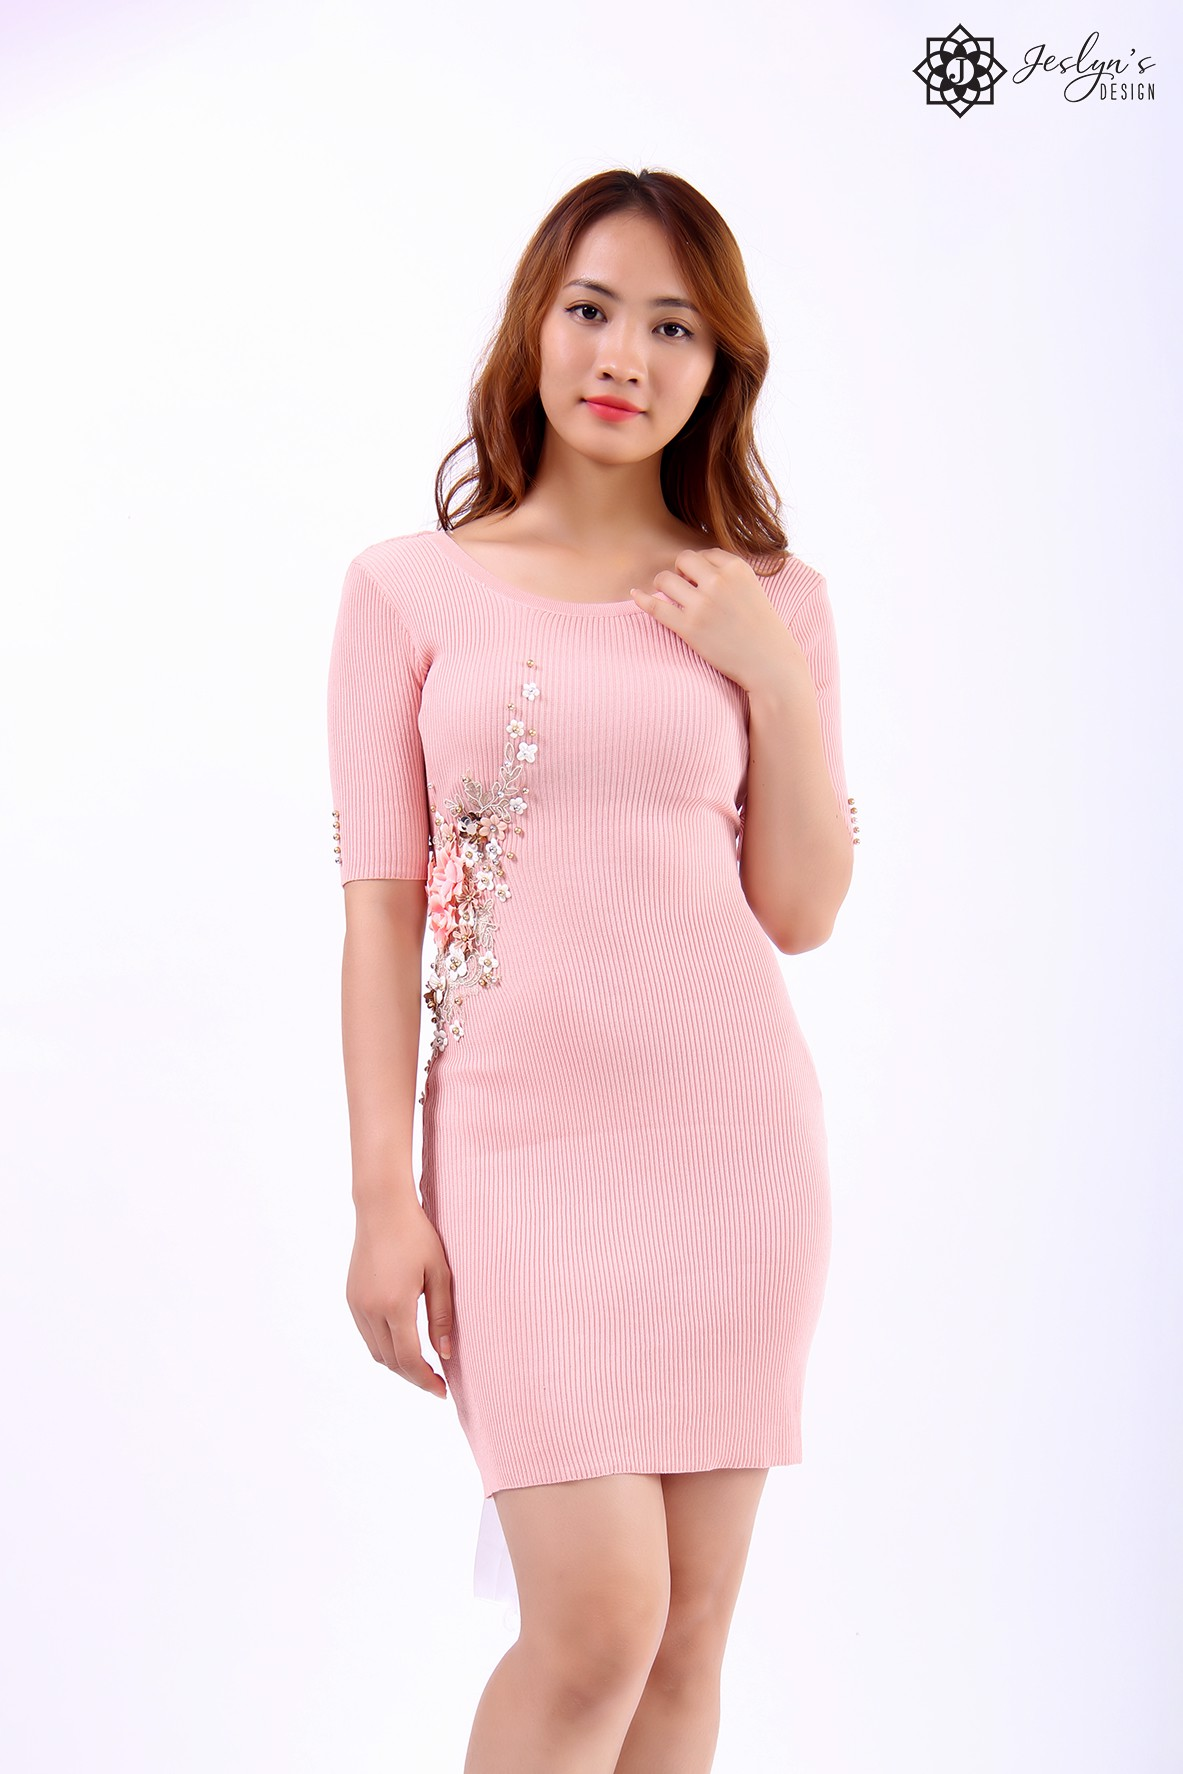 Rose pink dress DT190301-W27